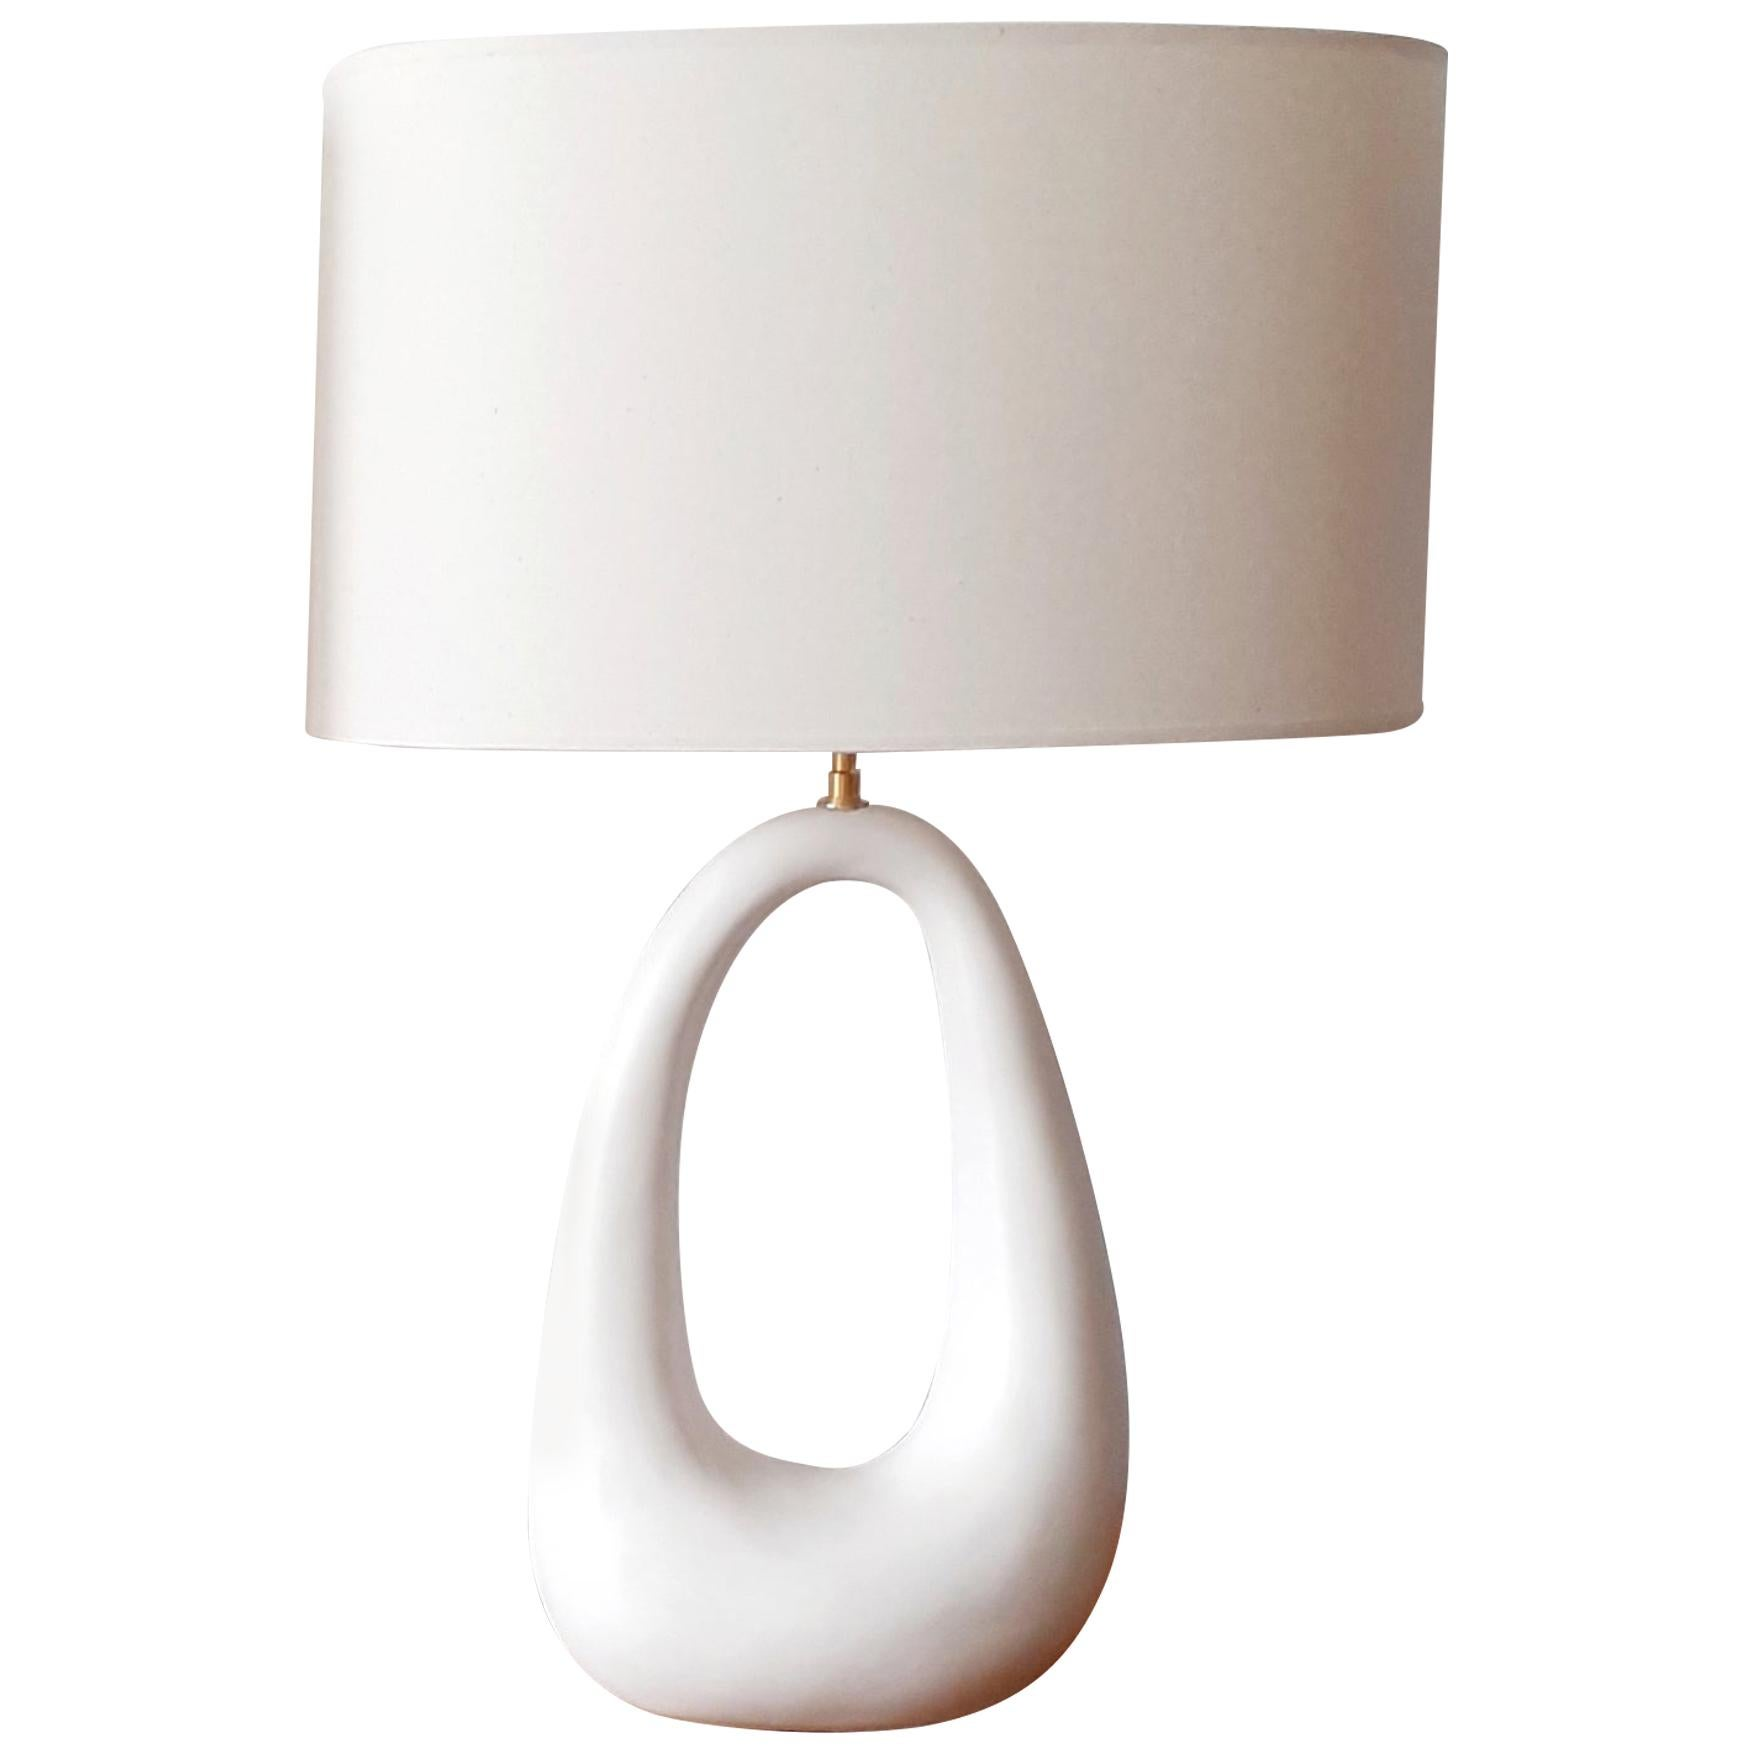 French Hand-Build Ceramic Lamp with Shade